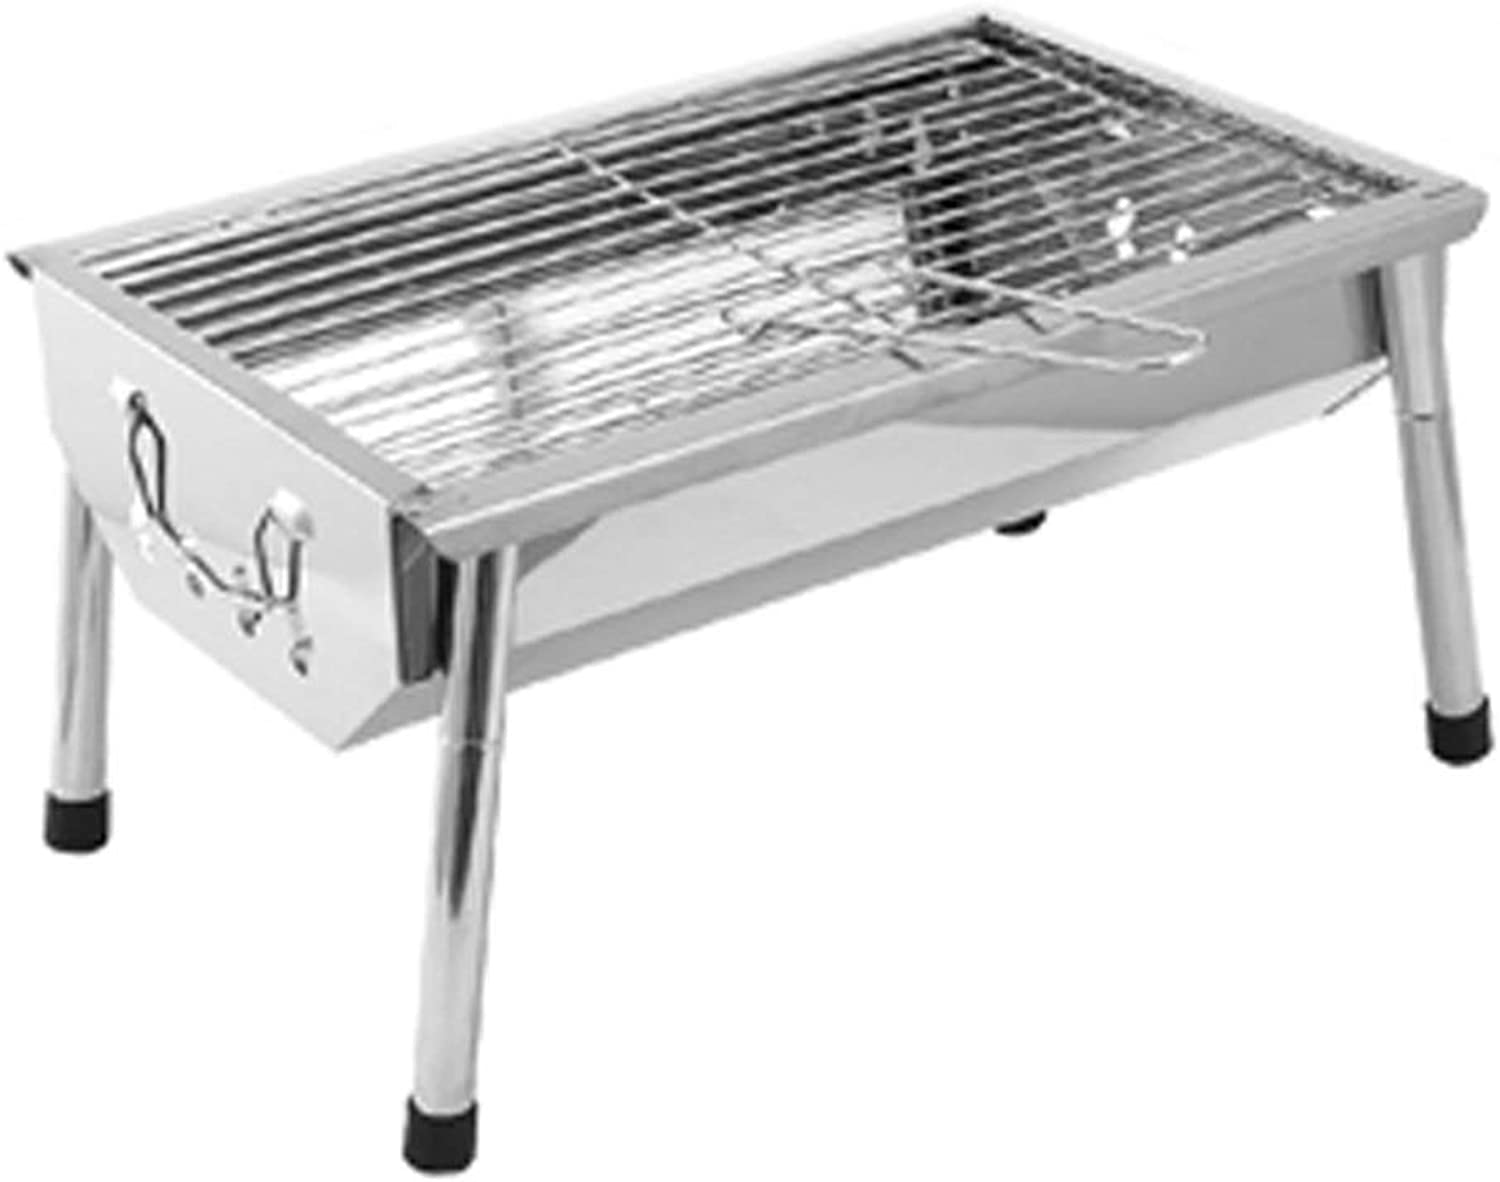 WN  Camping Stove Grills Outdoor Grill  23 People 5 Stove Folding Household Stainless Steel Charcoal Small Grill Outdoor Grill